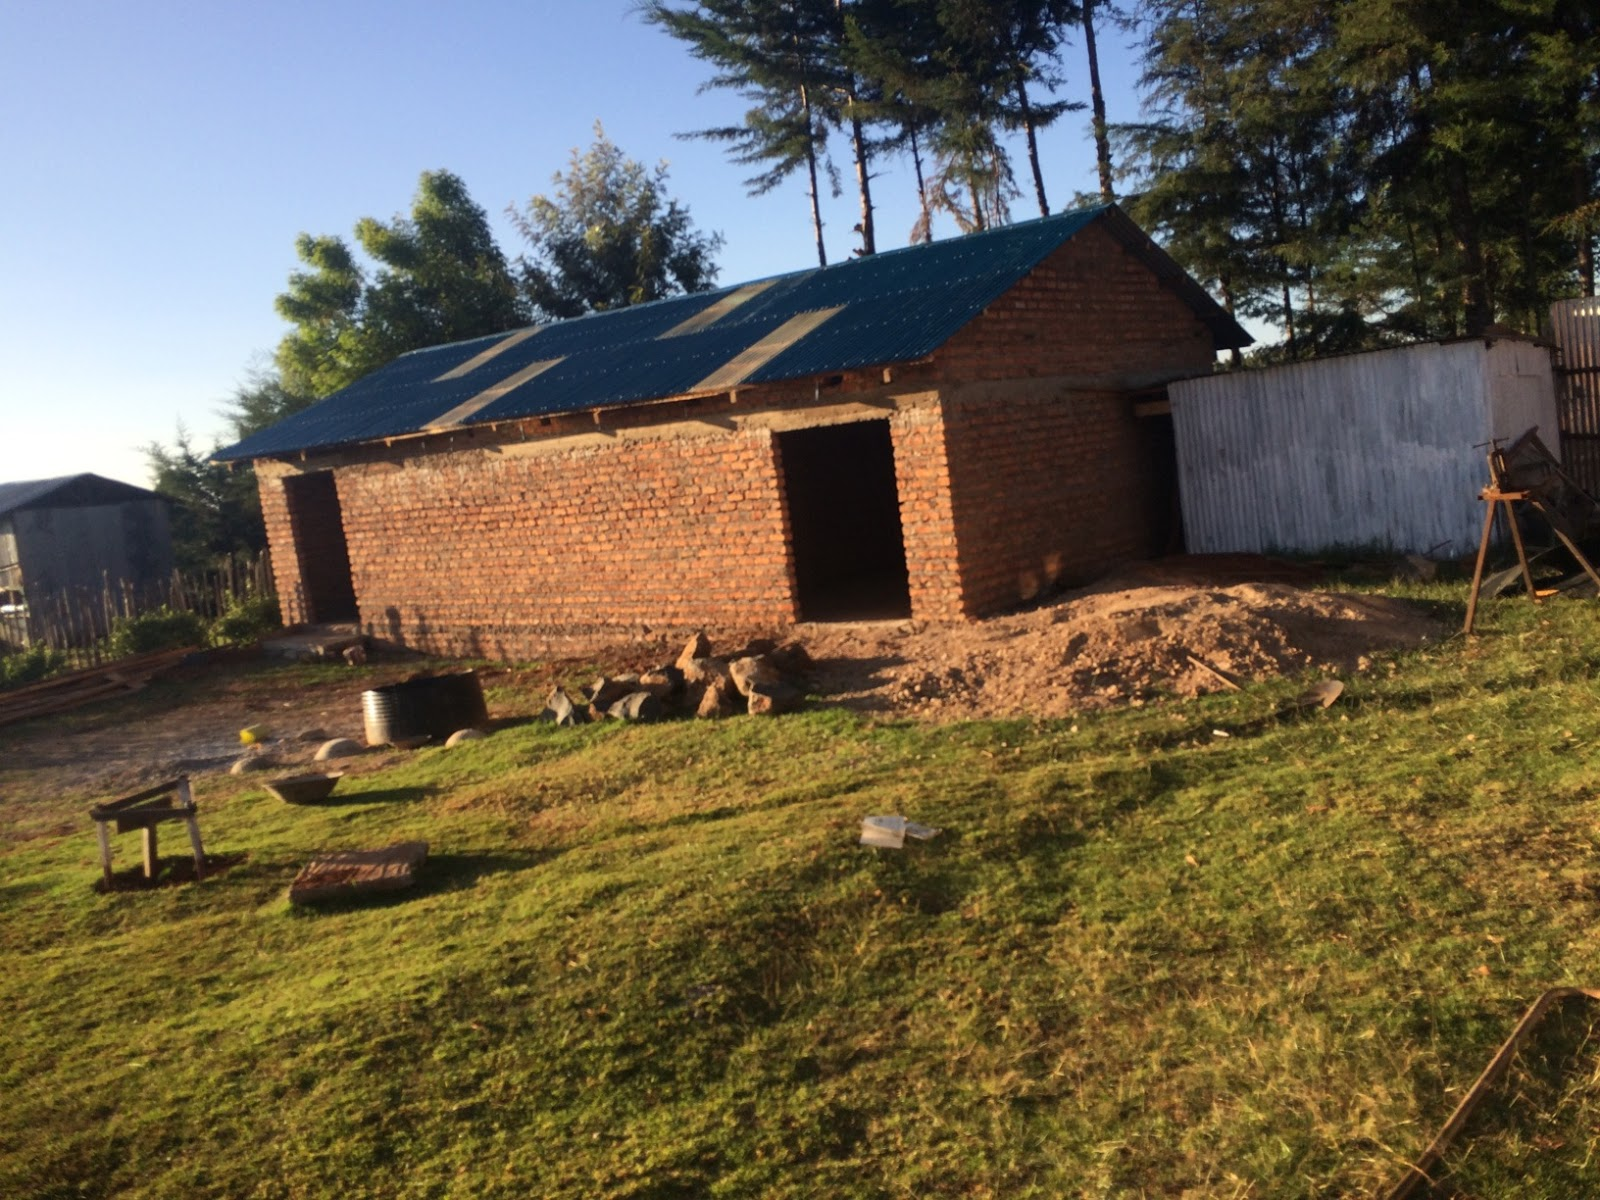 A 2 room building was built at grace family to house the container items and have a more permanent building to keep tools secure